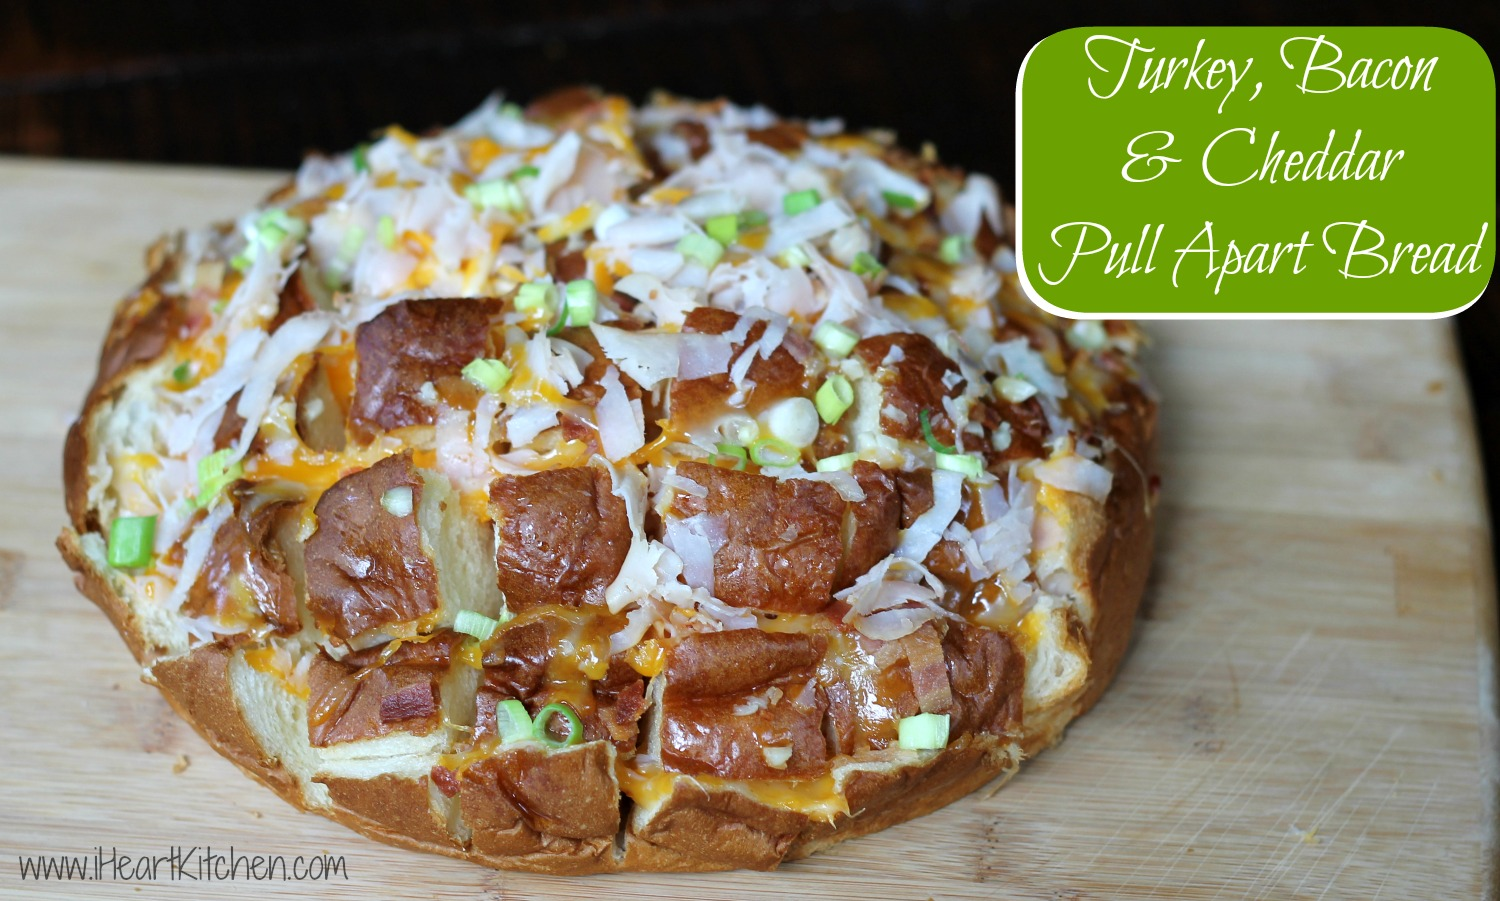 Turkey Bacon & Cheddar Pull Apart Bread